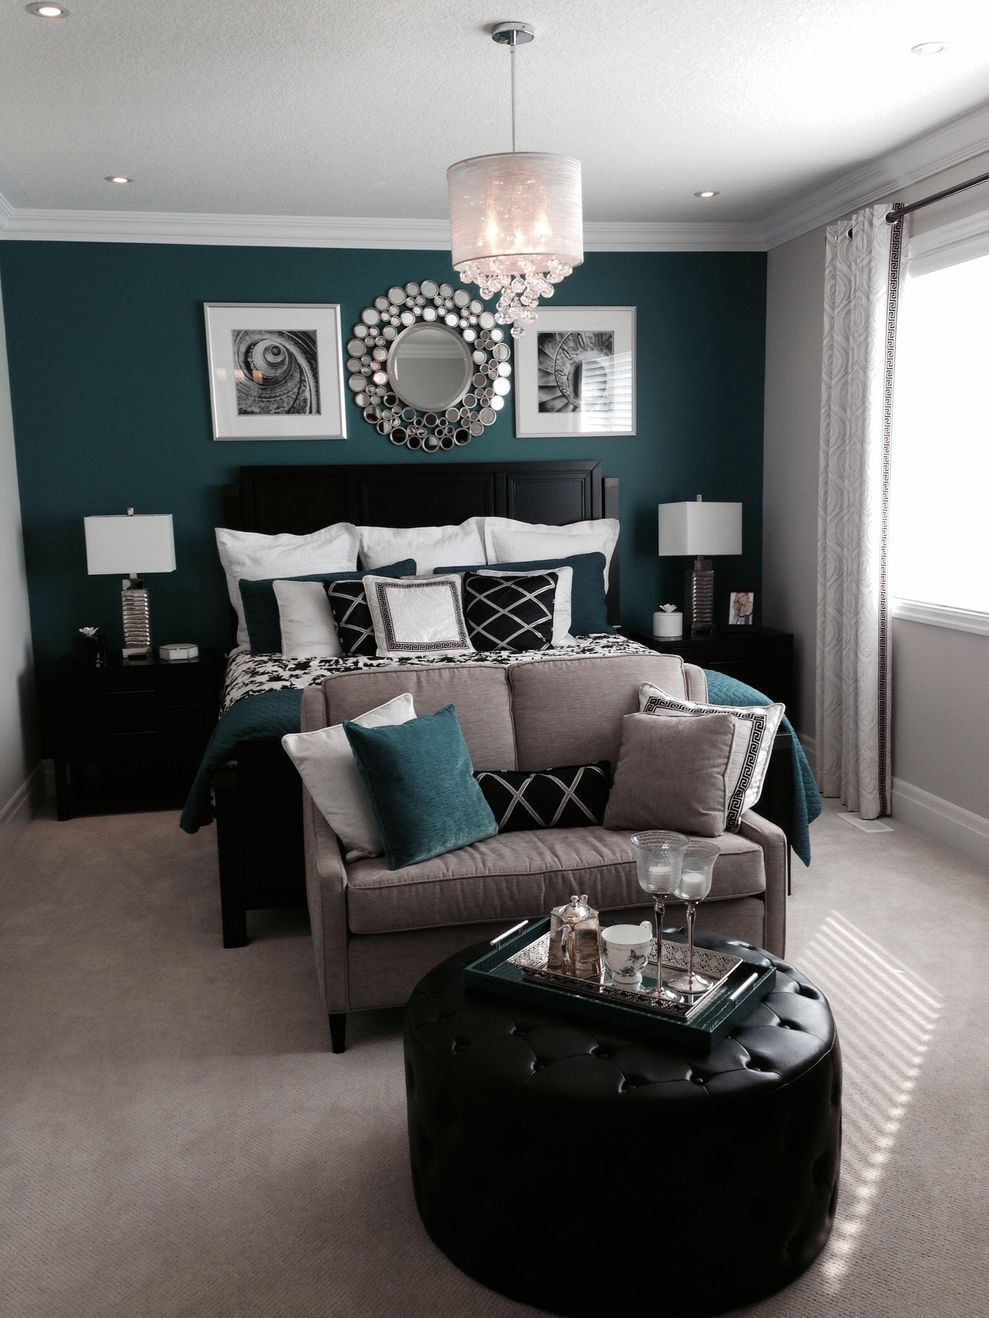 black furniture bedroom ideas - 42 Incredible Teal And Silver Living Room Design Ideas black furniture bedroom ideas